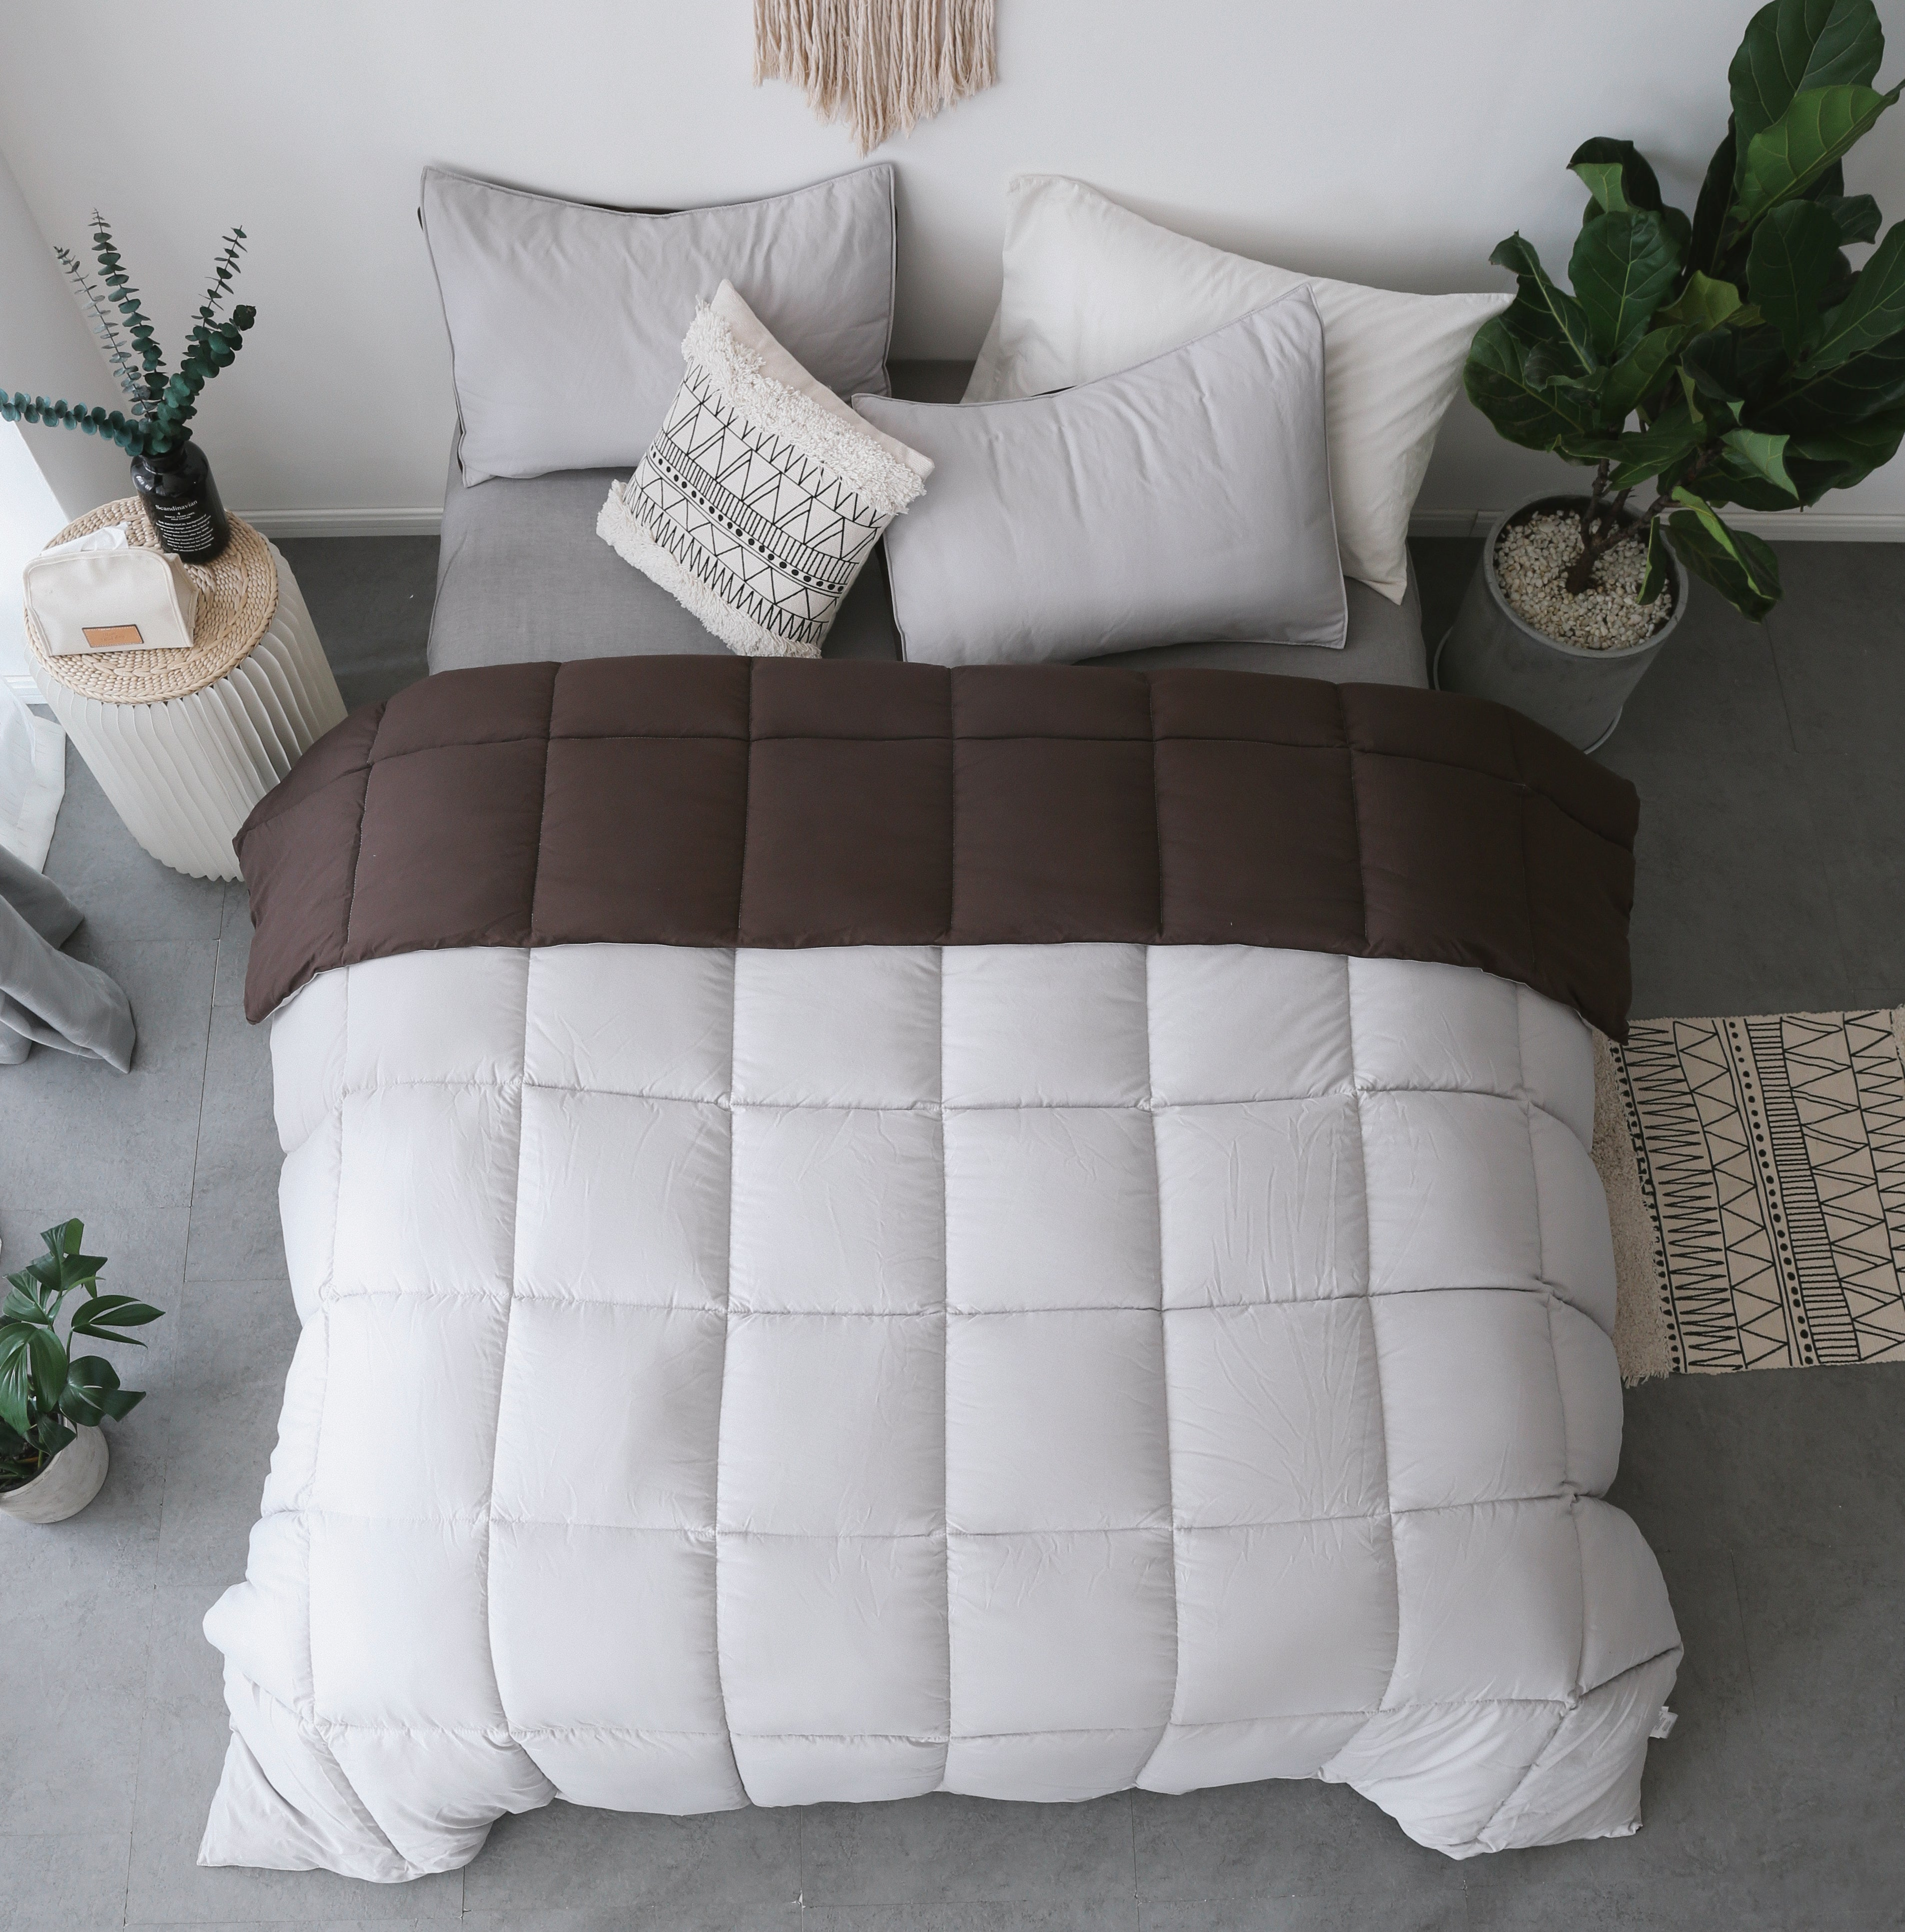 Kasentex Quilted Comforter Set, Goose Down Alternative Microfiber Fill - All Season - Ultra Soft - Machine Washable - Hypoallergenic - Reversible, Duvet Insert